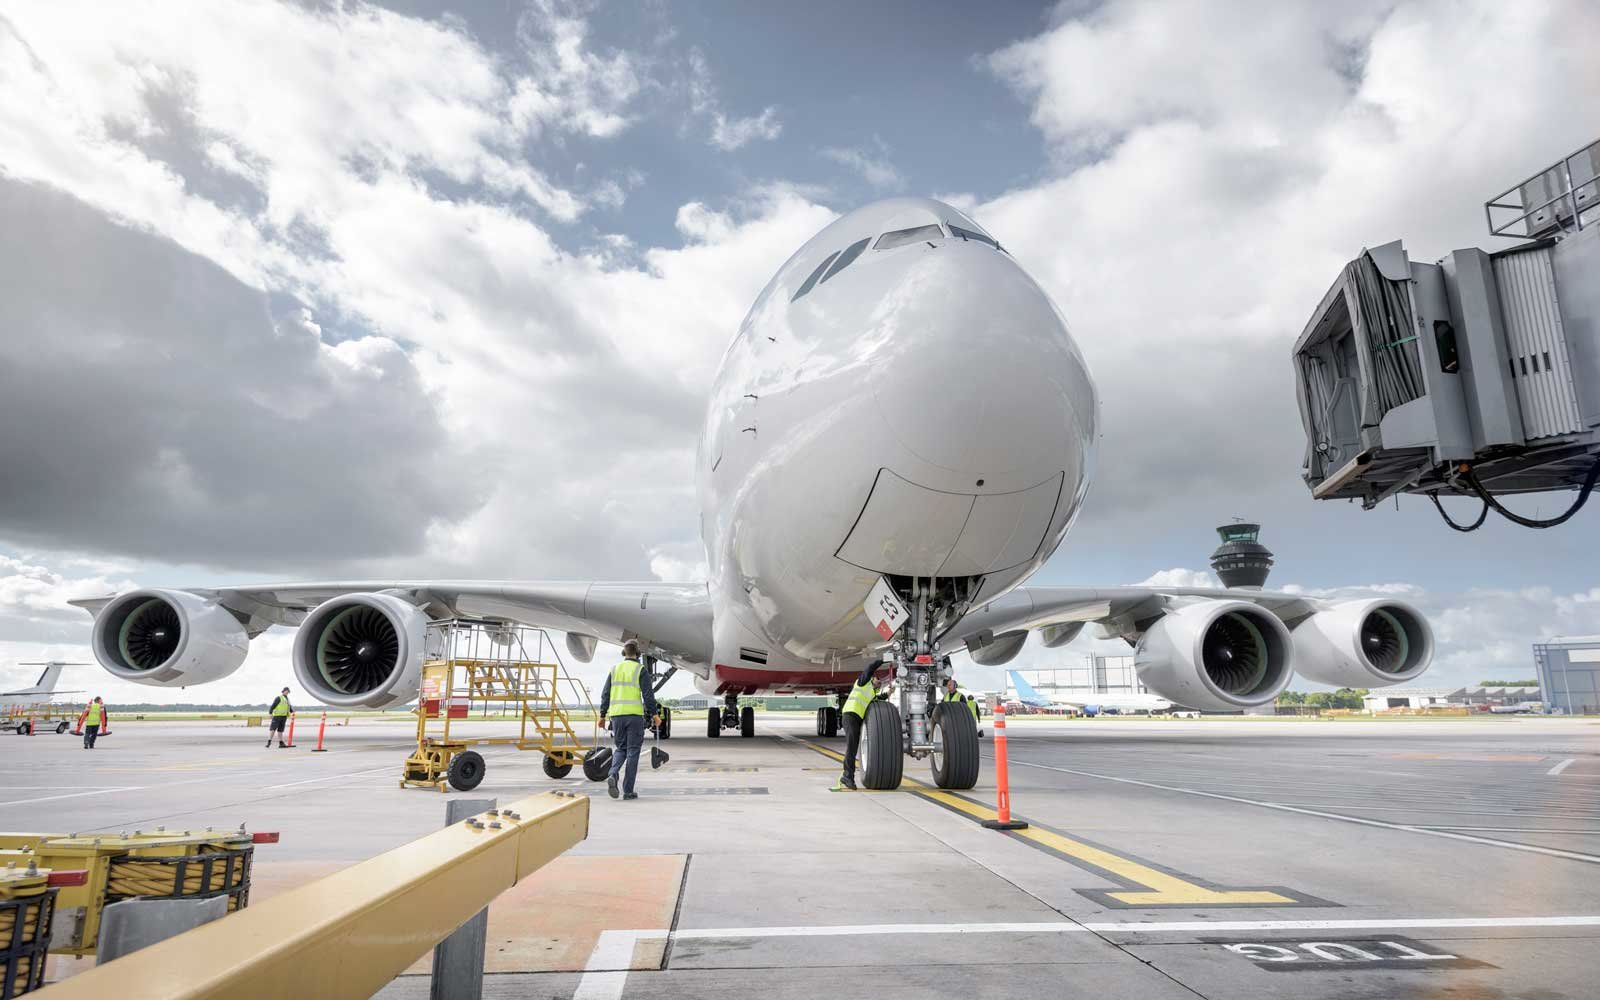 an A380 airplane arriving at the airport